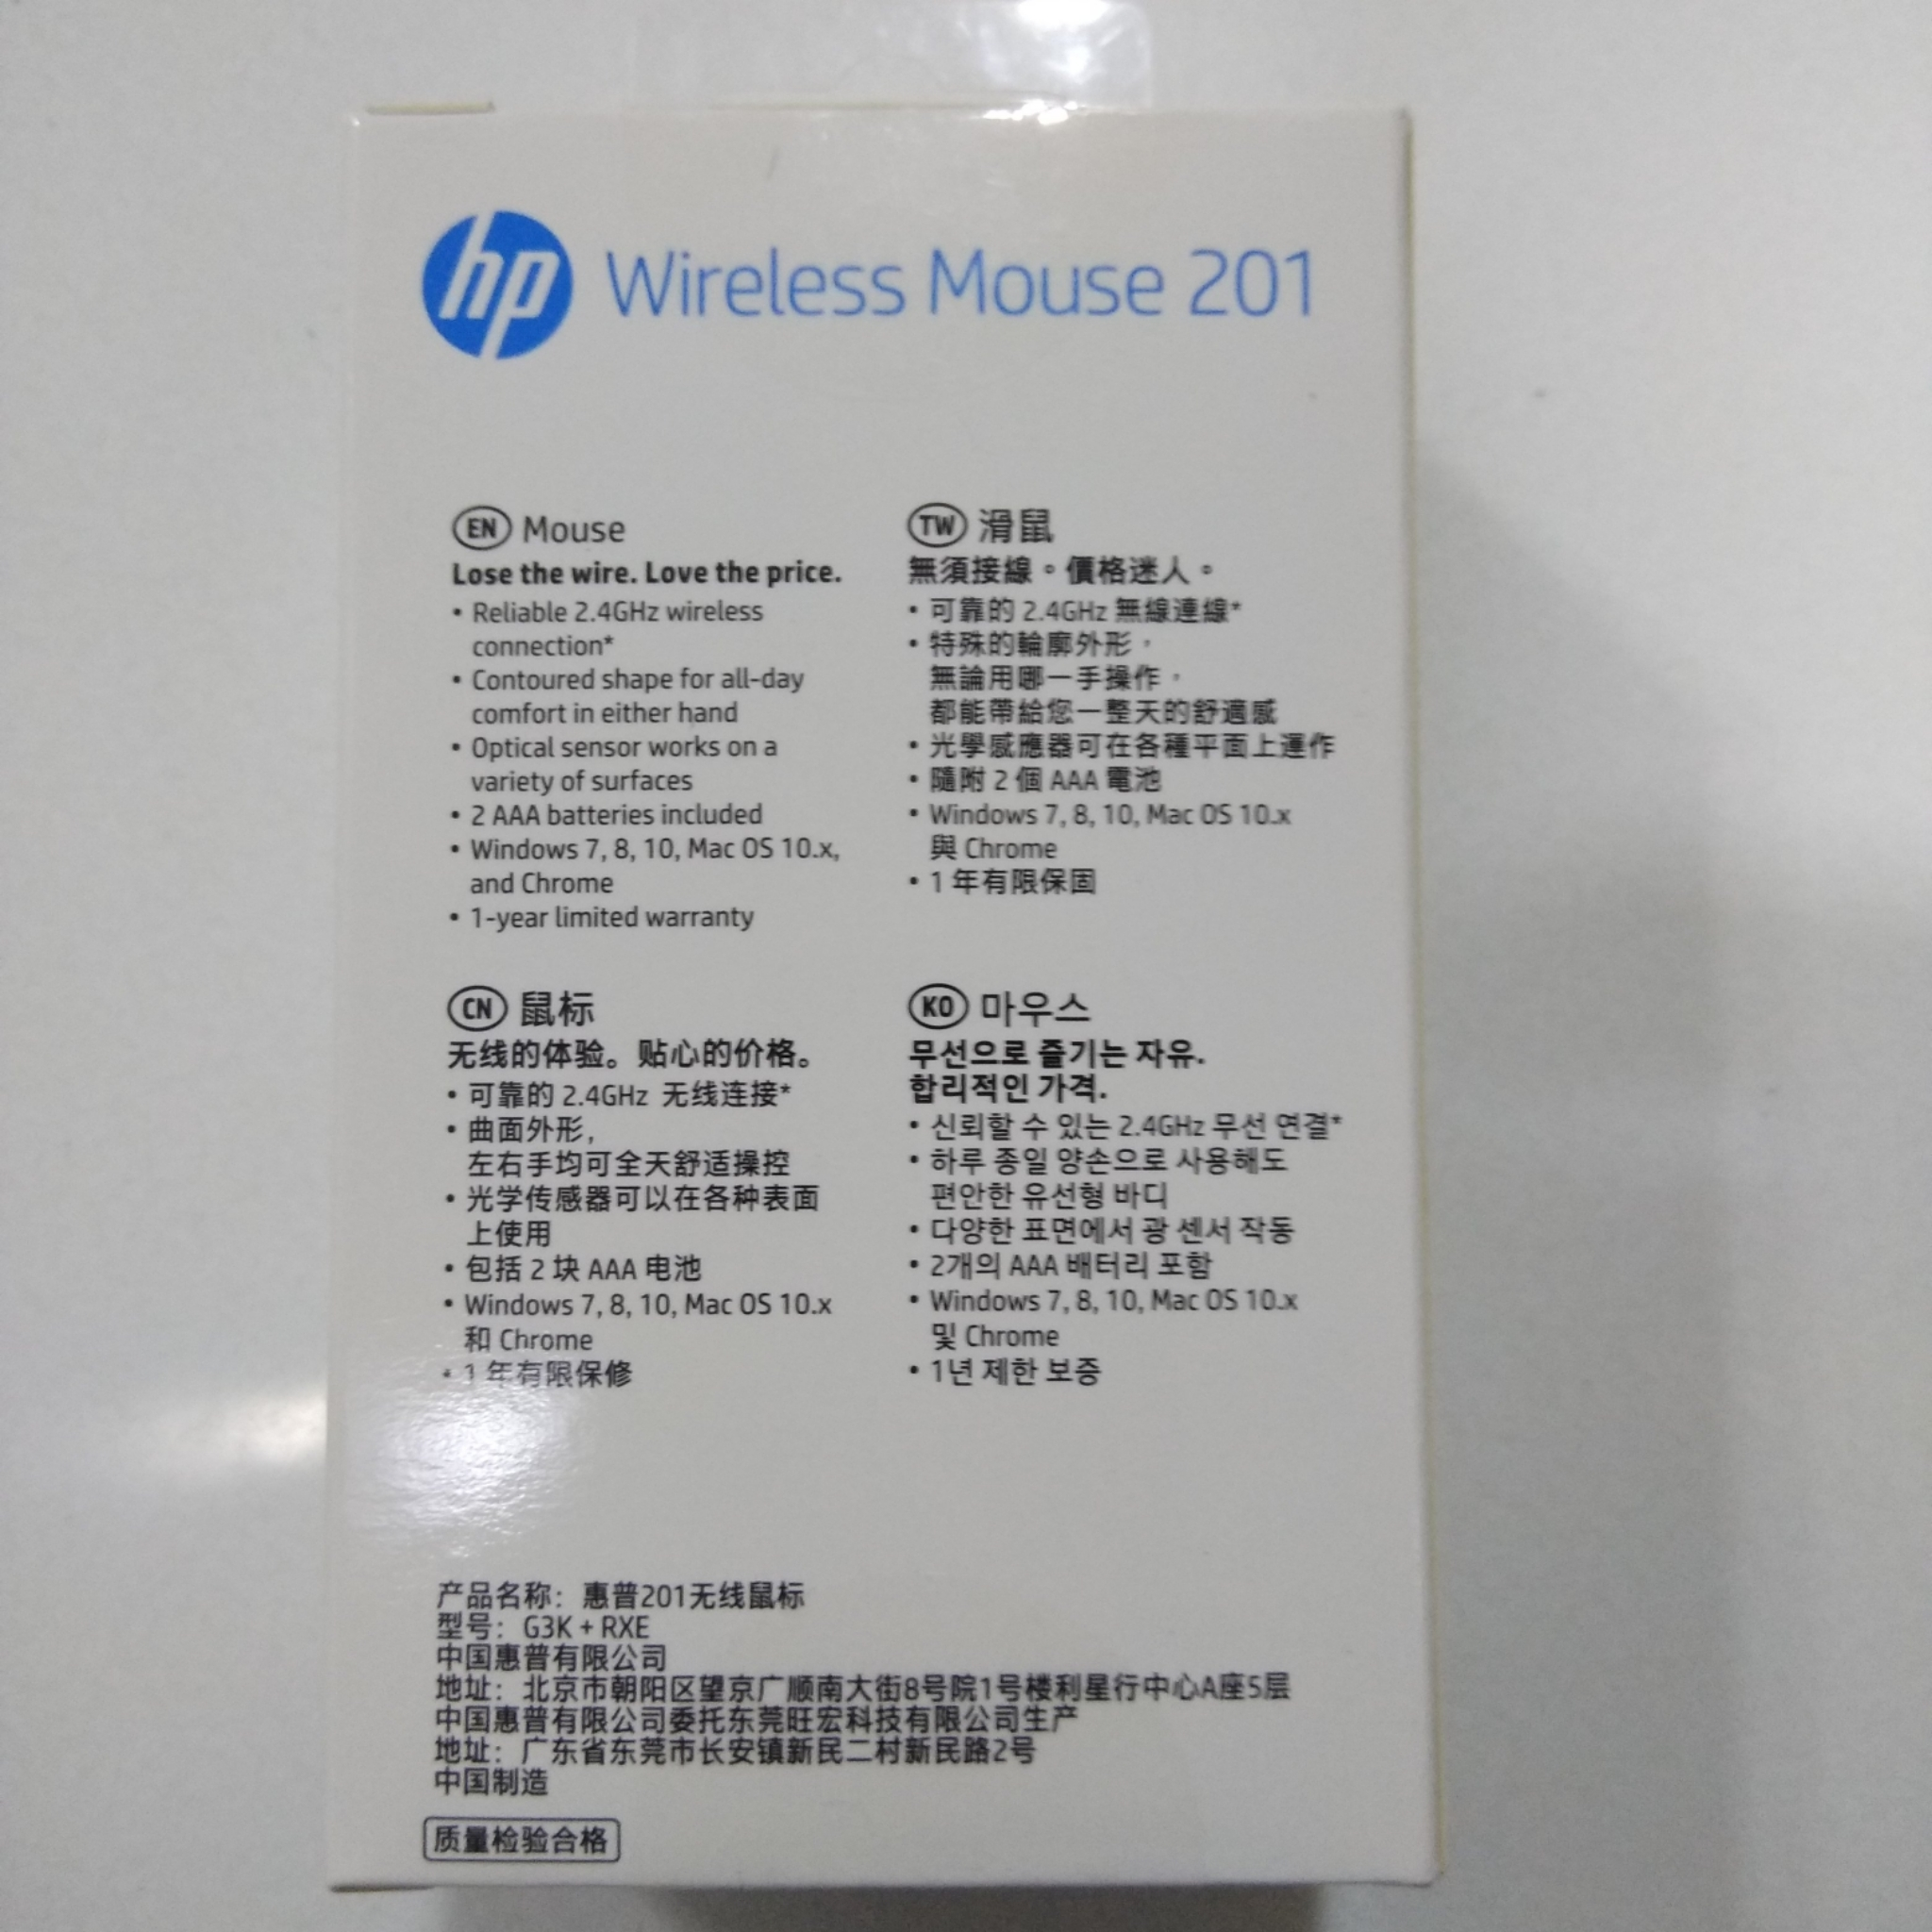 HP Wireless Mouse, 201